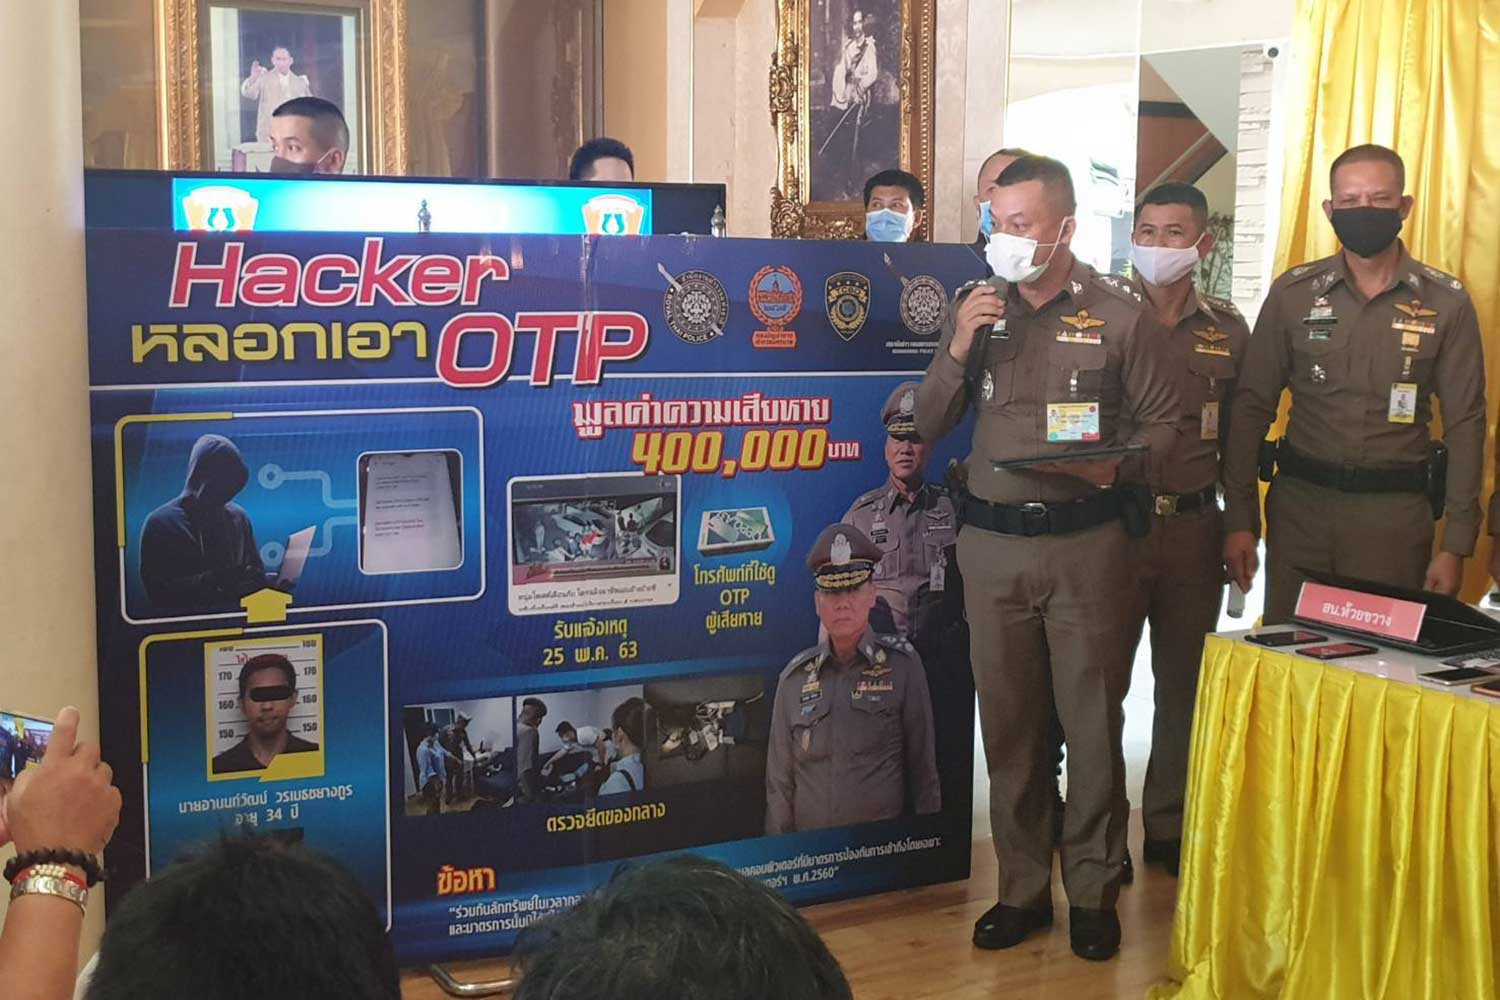 Pol Lt Gen Pakkapong Pongpetra, chief of the Metropolitan Police Bureau, announces the arrest of Anontwat Vorametchayangkul, with the aid of a colourful flow chart explaining the case, during a media briefing on Thursday. (Photo supplied)